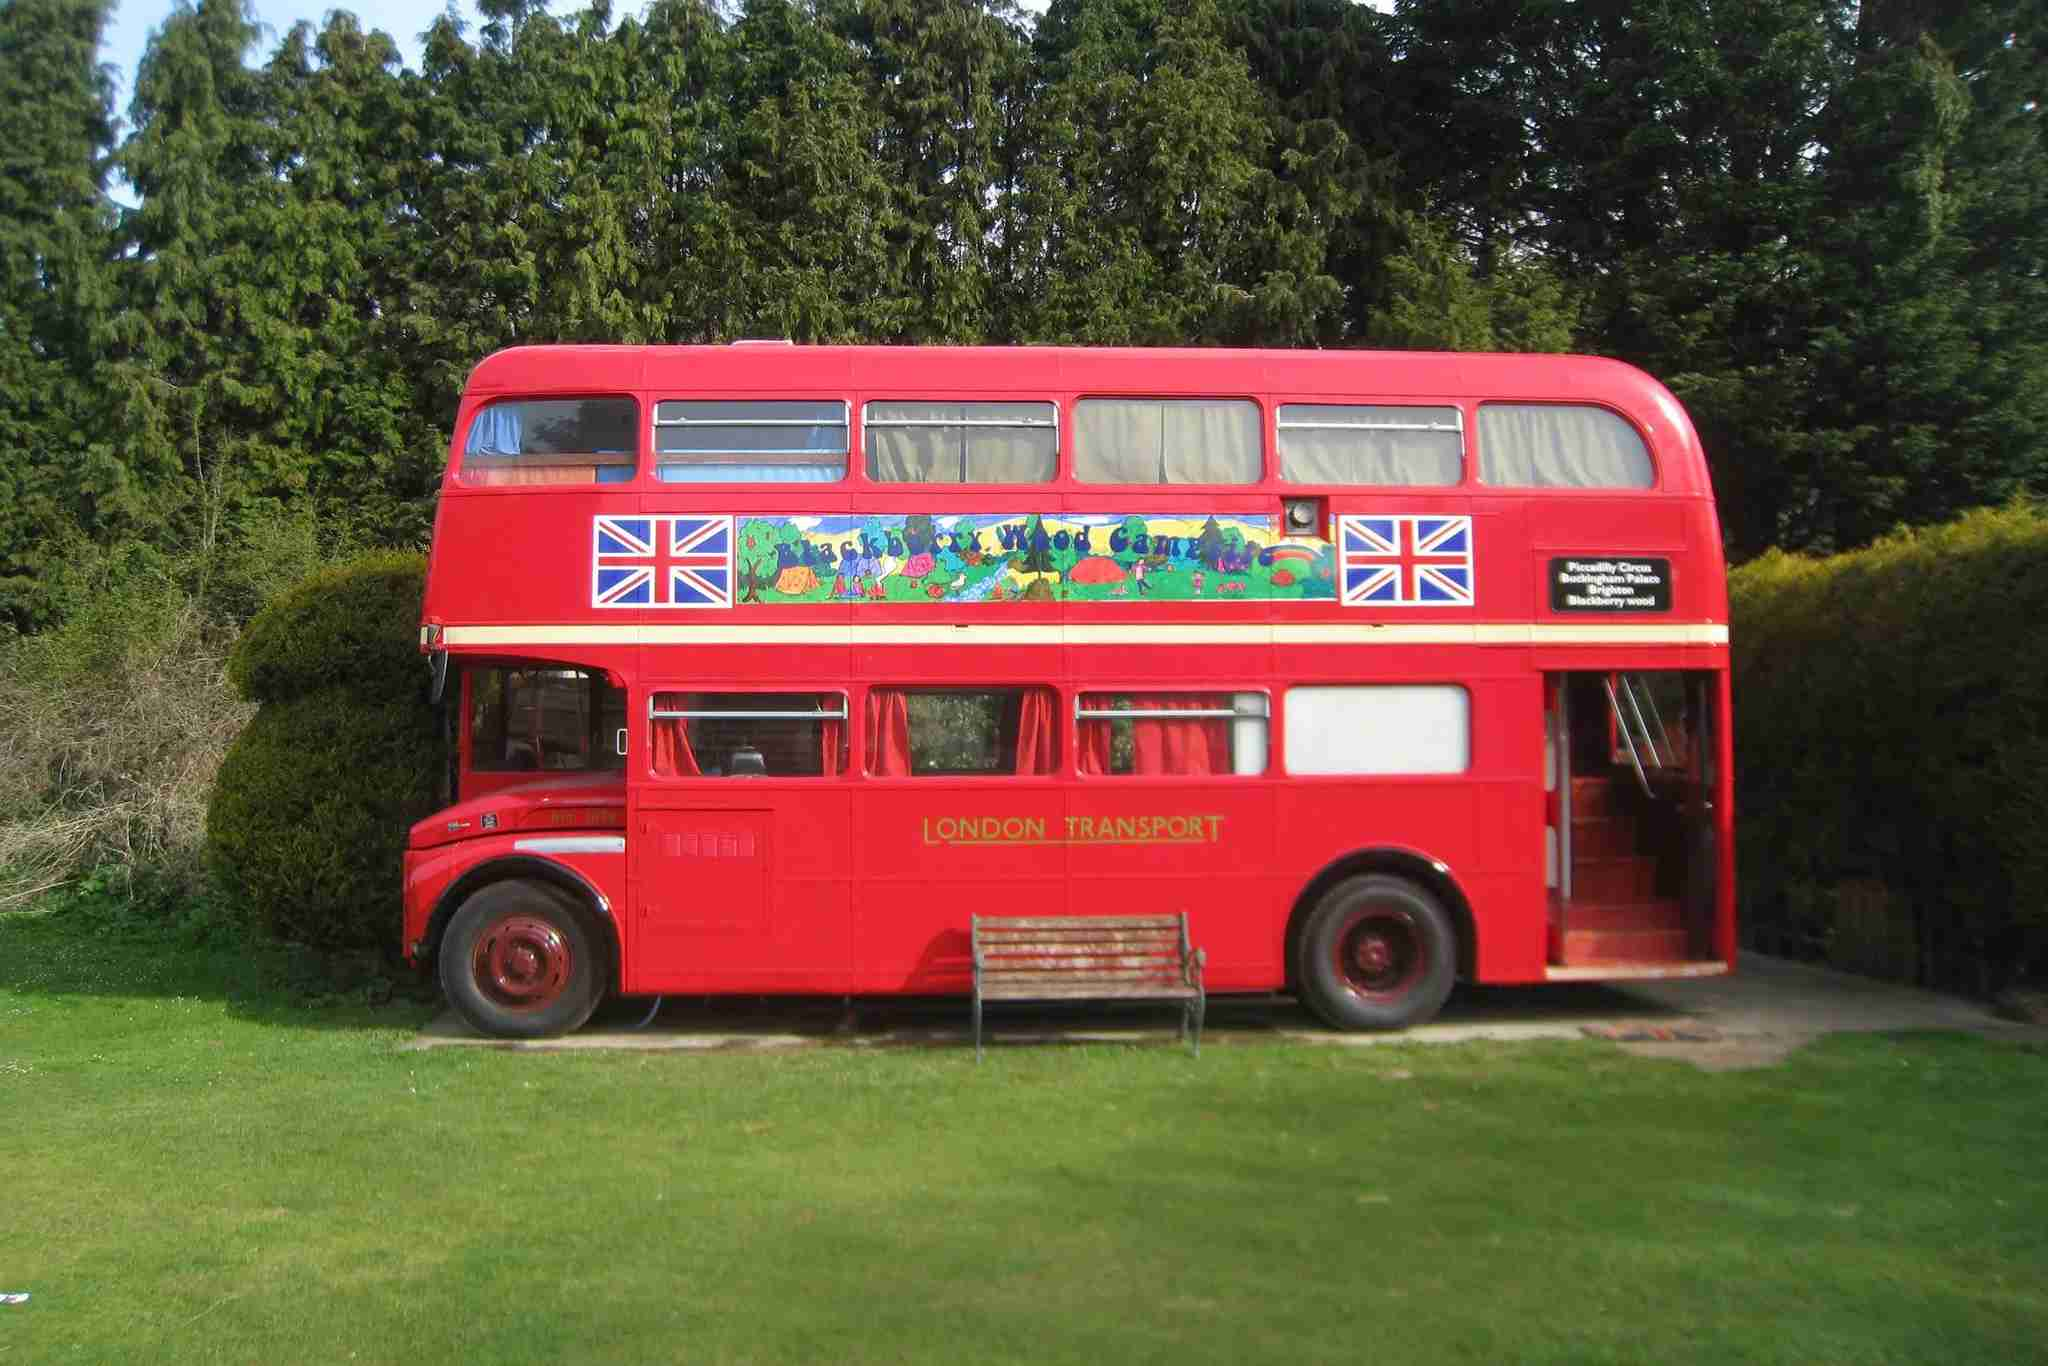 You also have the option to sleep in this double-decker bus. Image courtesy of Blackberry Wood.